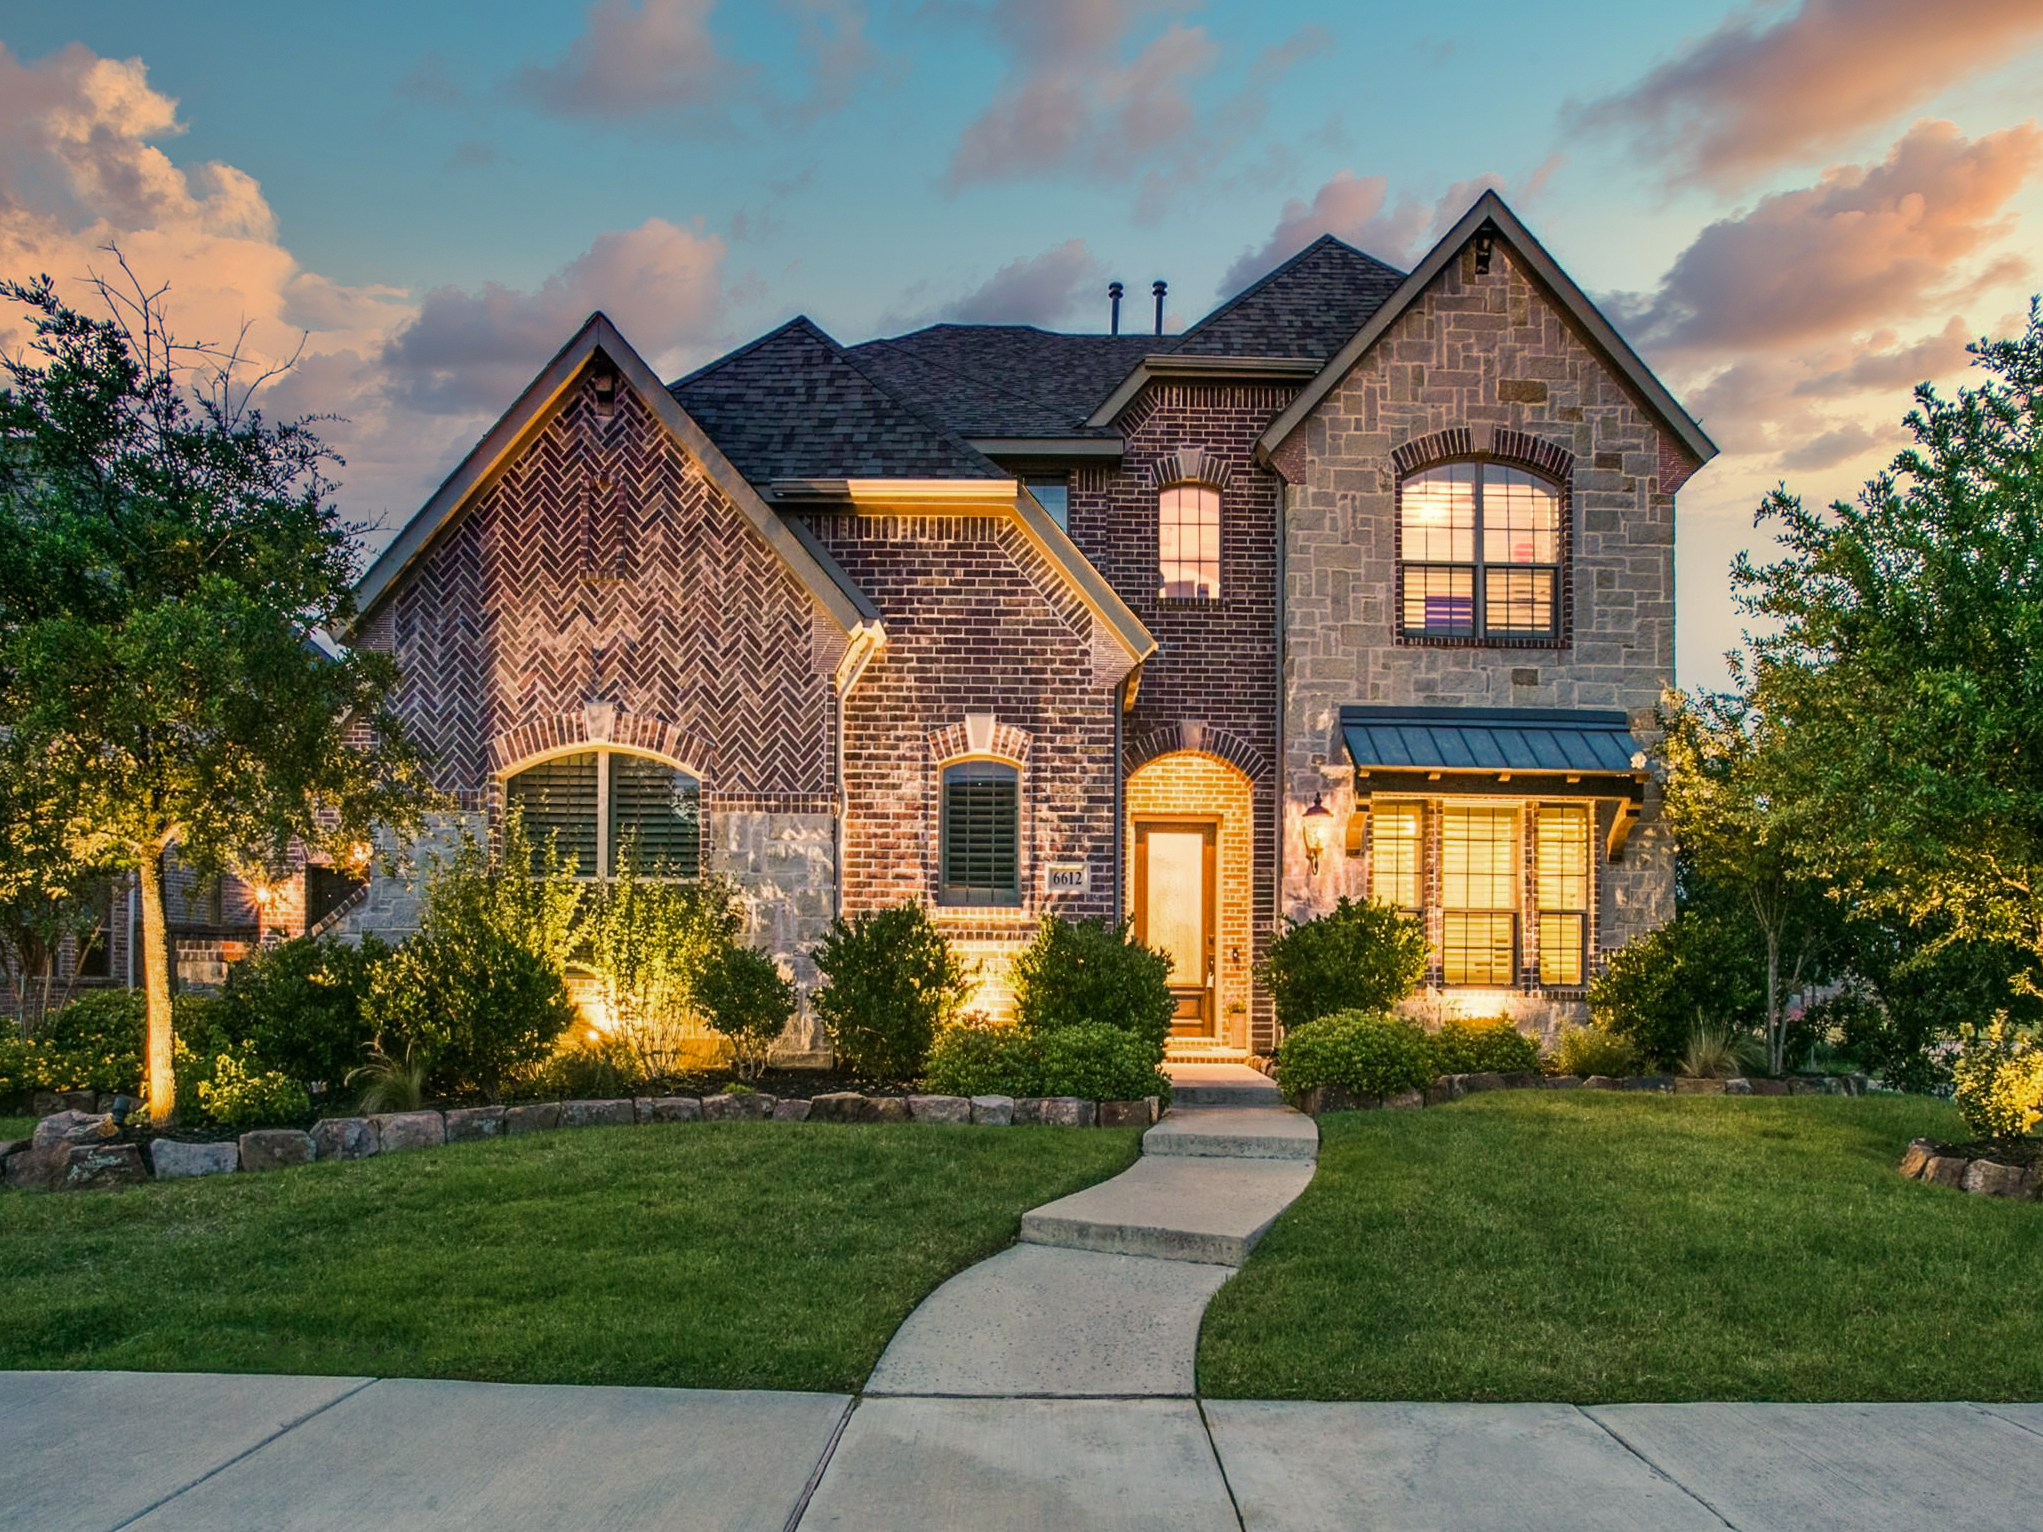 A two-story home for sale in Frisco, Texas